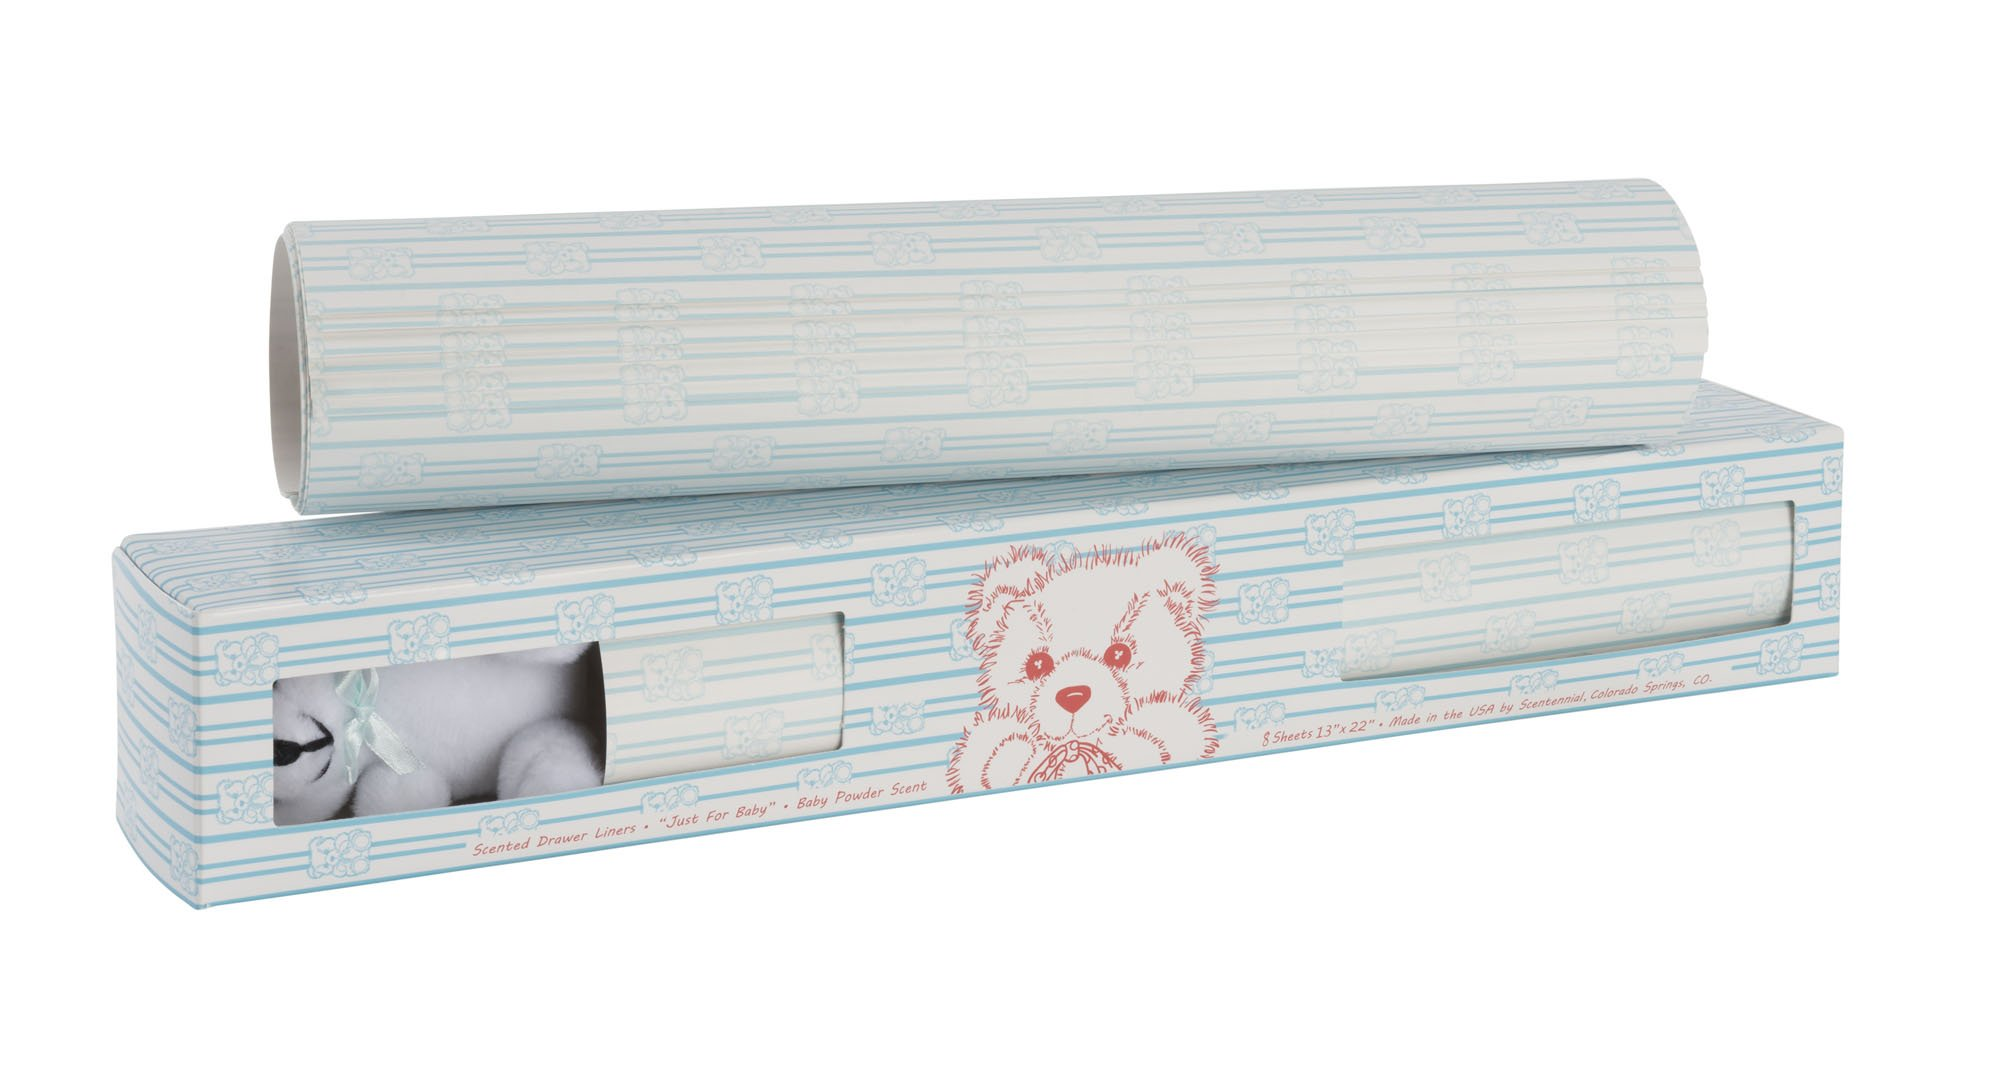 Scentennials BABY ORIGINAL BLUE WITH TEDDY BEAR (8 SHEETS) Scented Fragrant Shelf & Drawer Liners 13'' x 22'' - Great for Nursery Dresser, Bathroom, Vanity & Linen Closet